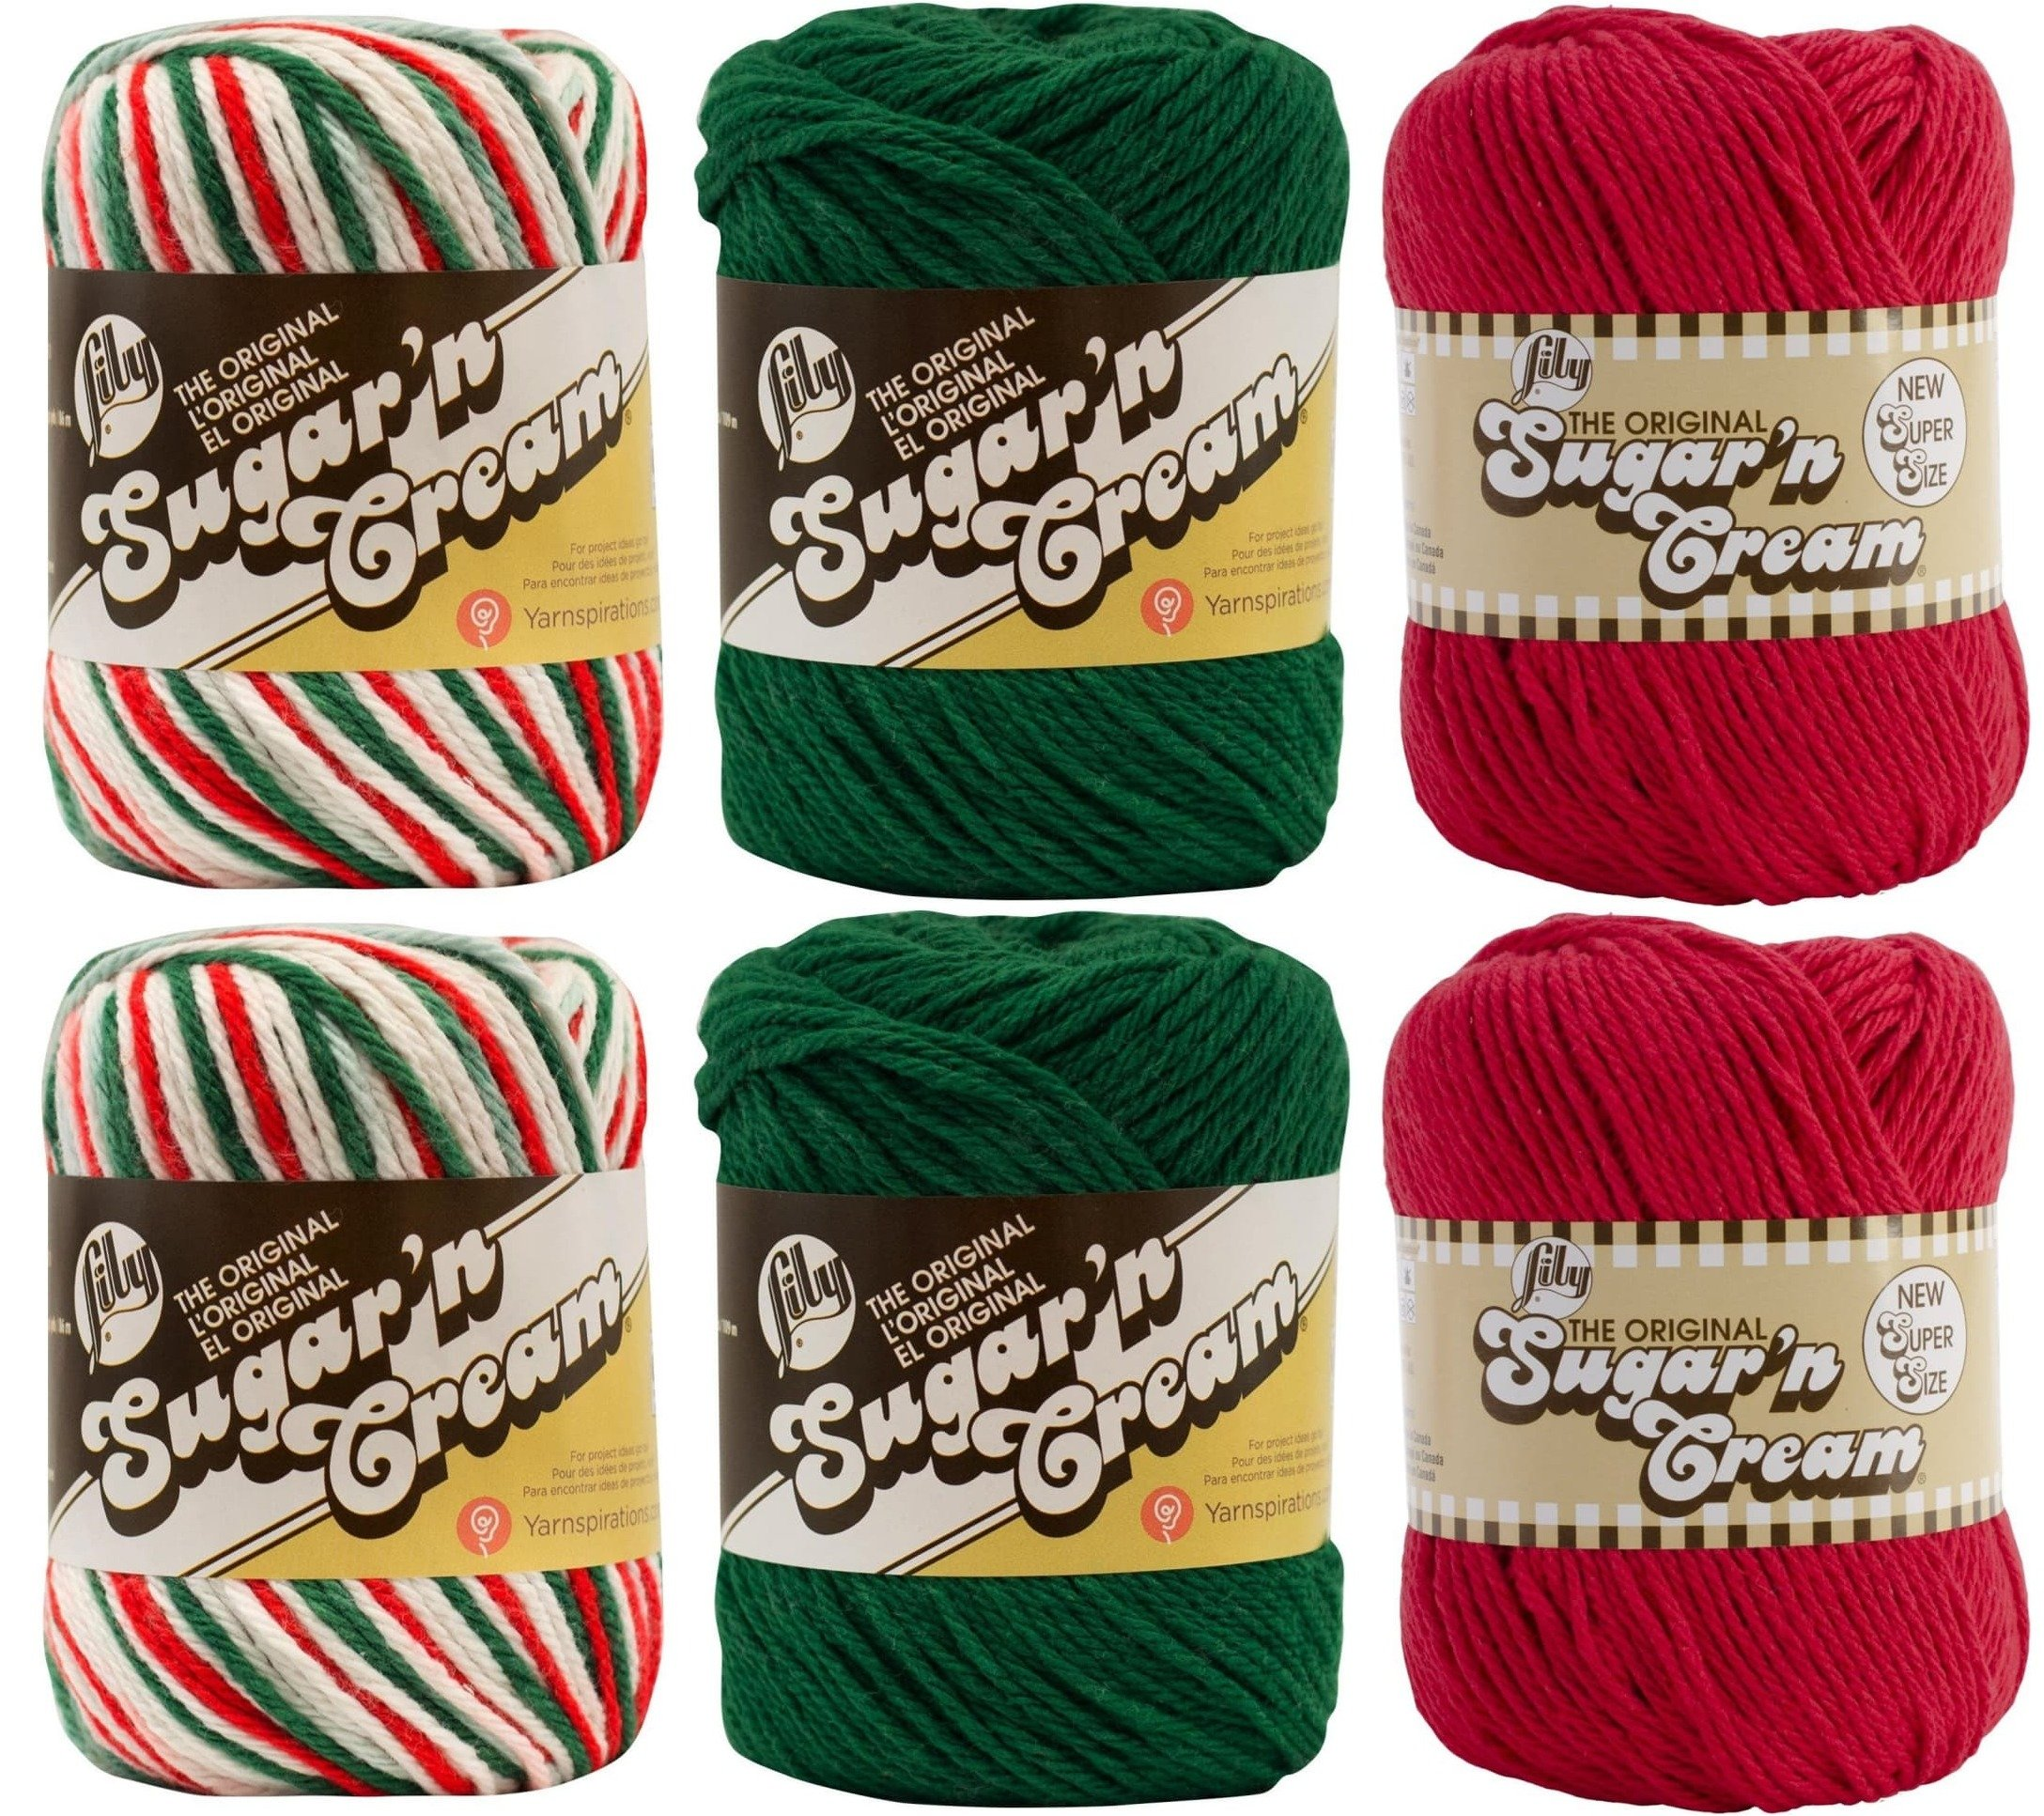 Variety Assortment Lily Sugar'n Cream Yarn 100% Cotton Solids and Ombres Holiday Bundle (6-Pack) Medium #4 Worsted